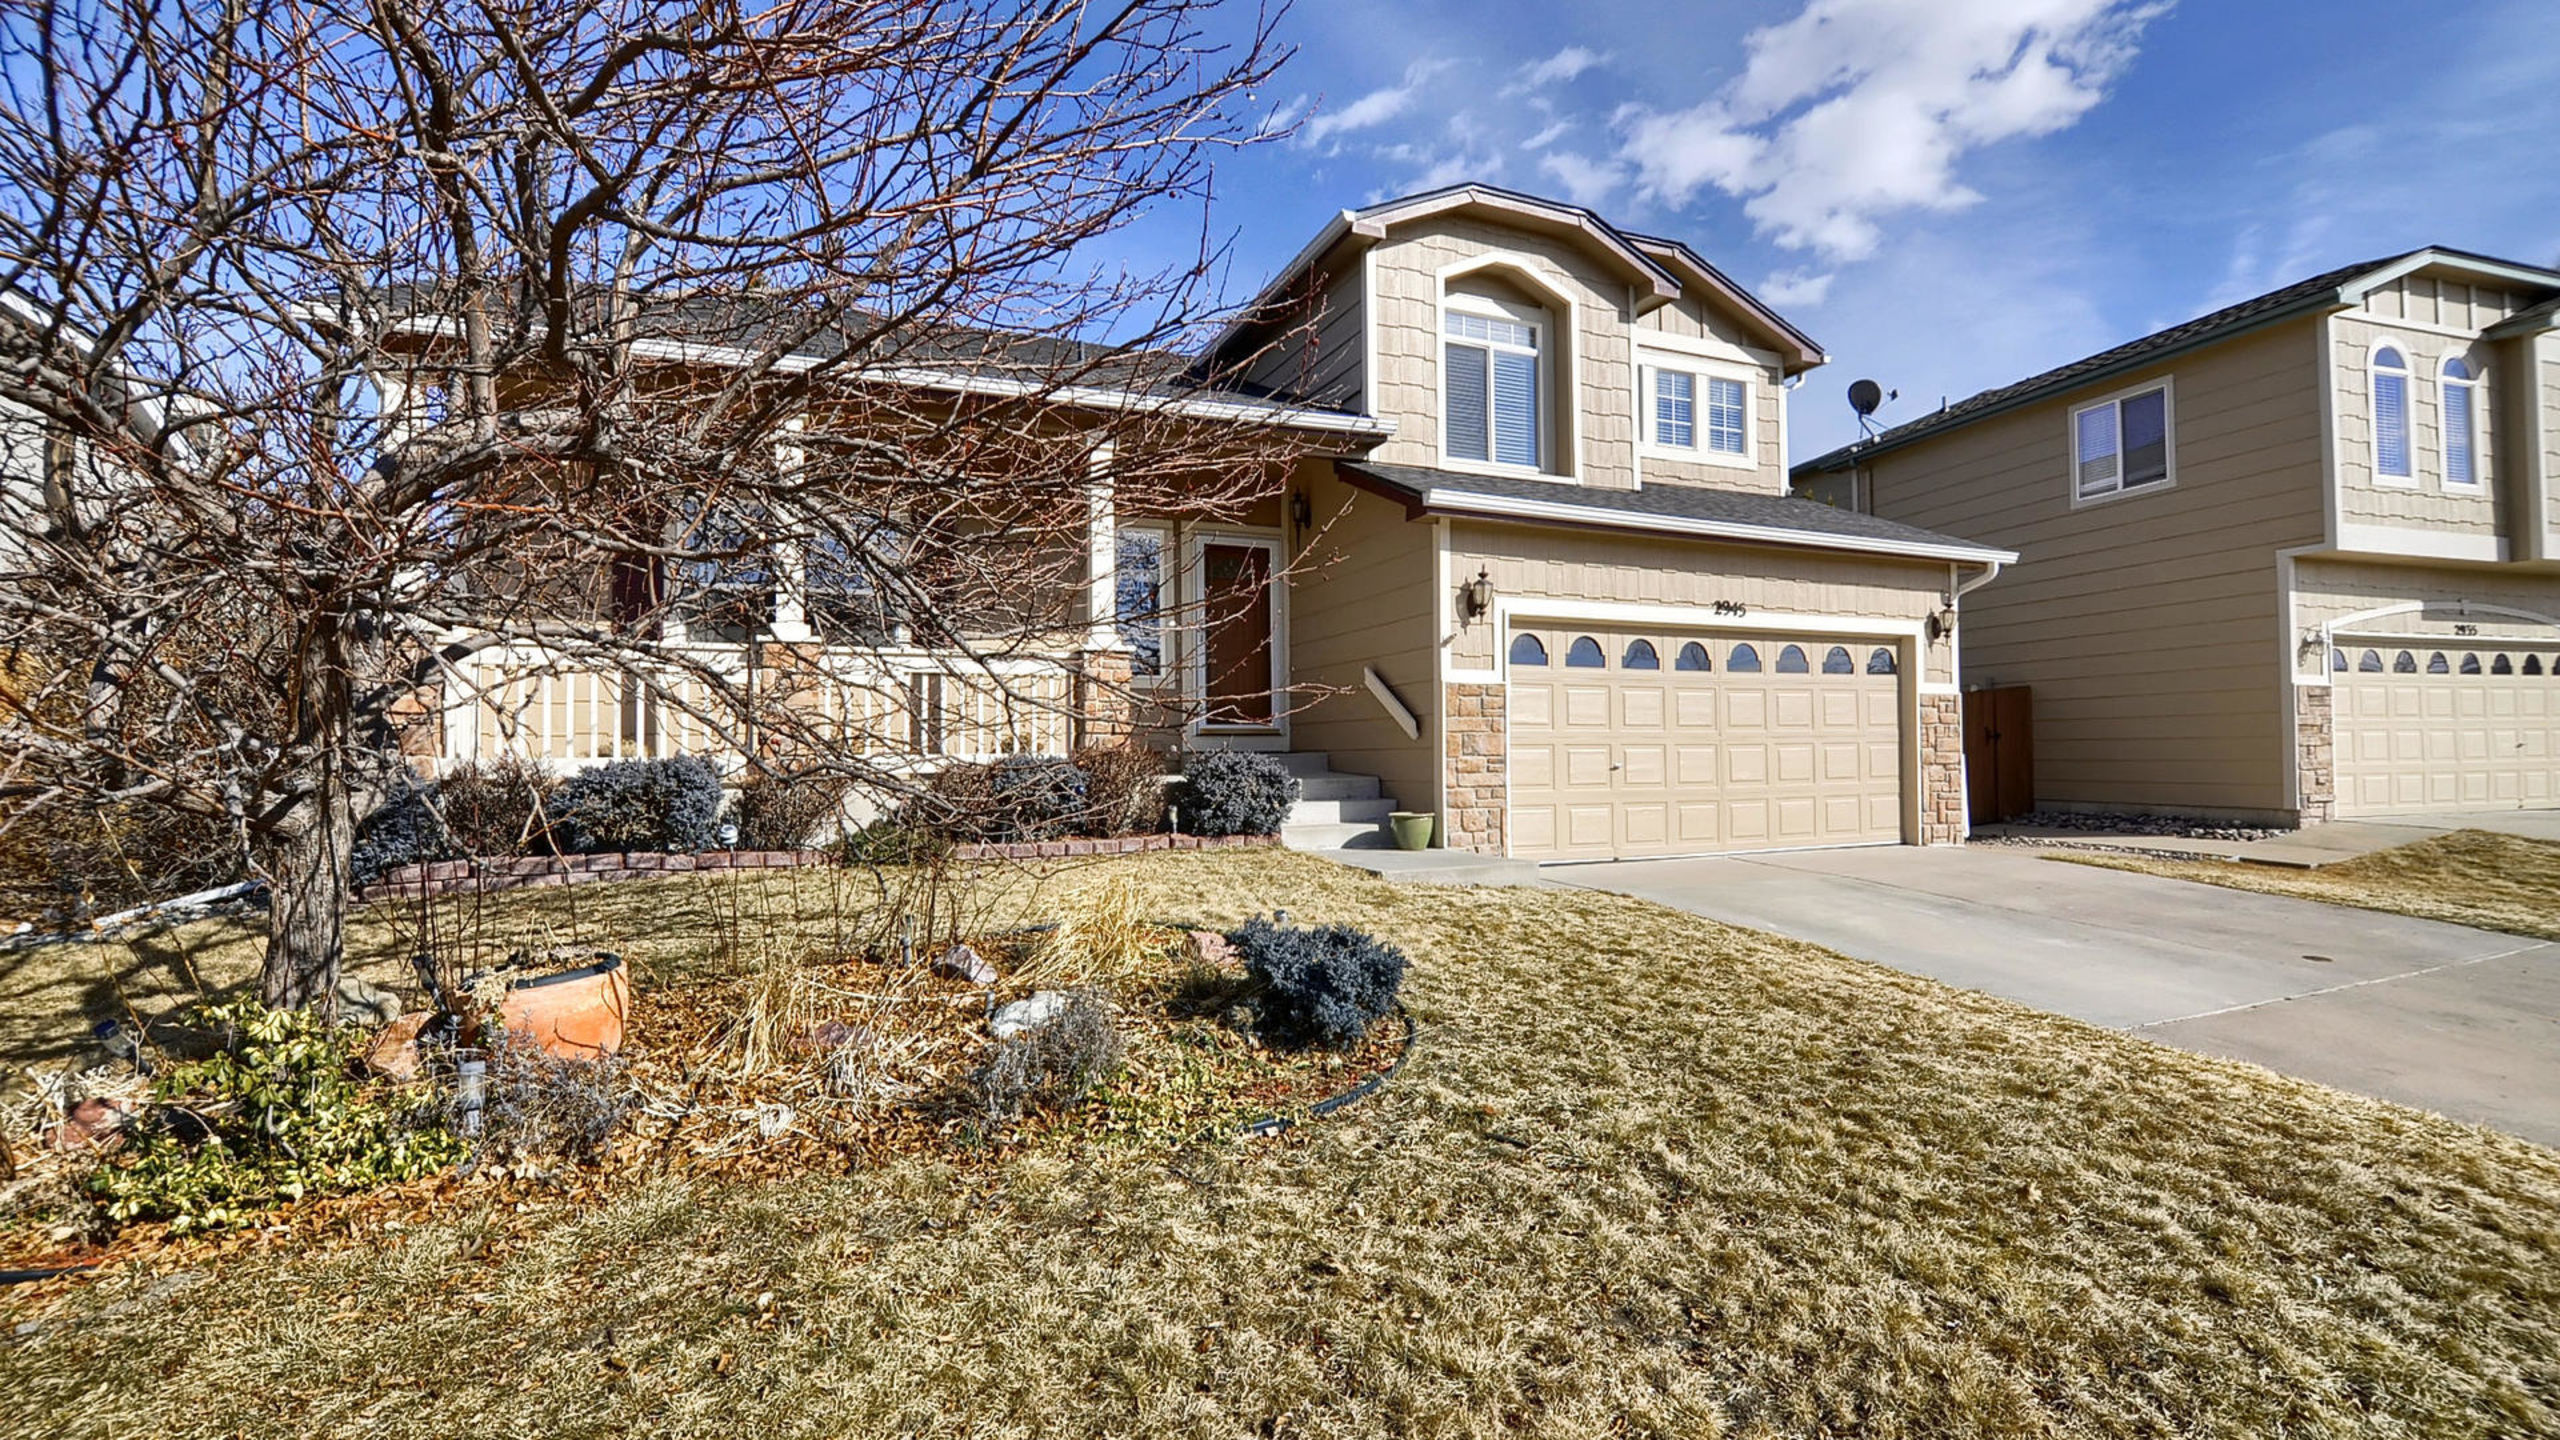 This home under contract in 7 days! Lets get your home sold!